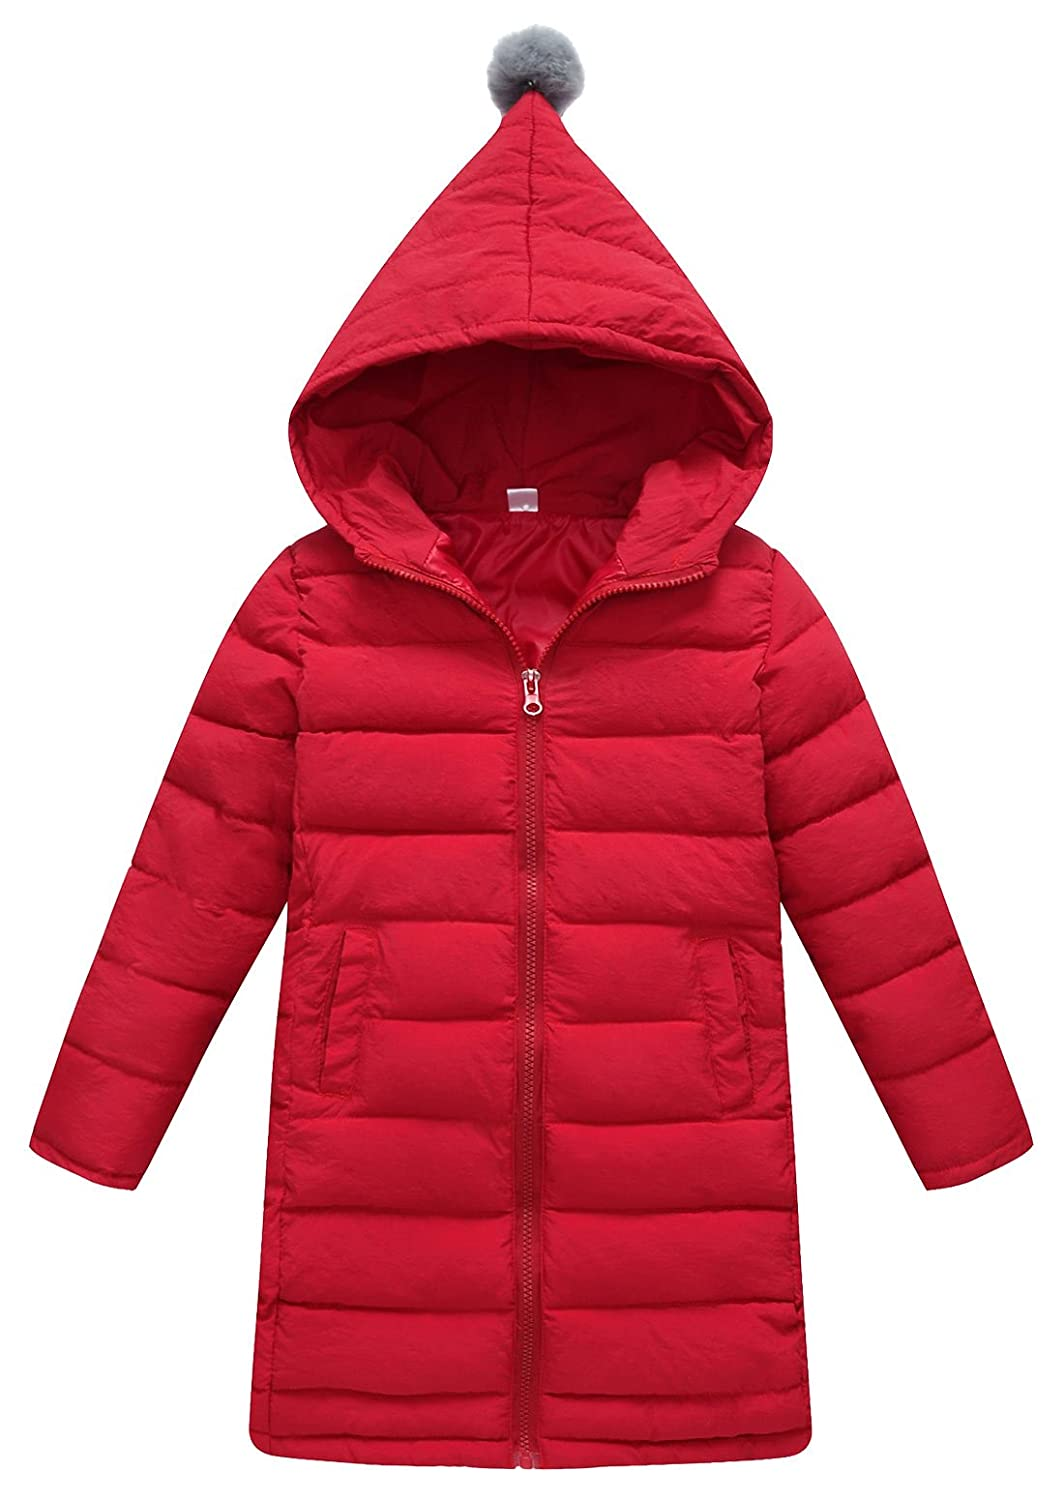 SLUBY Girls Hooded Down Jacket Lightweight Winter Outerwear Slim Puffer Coat